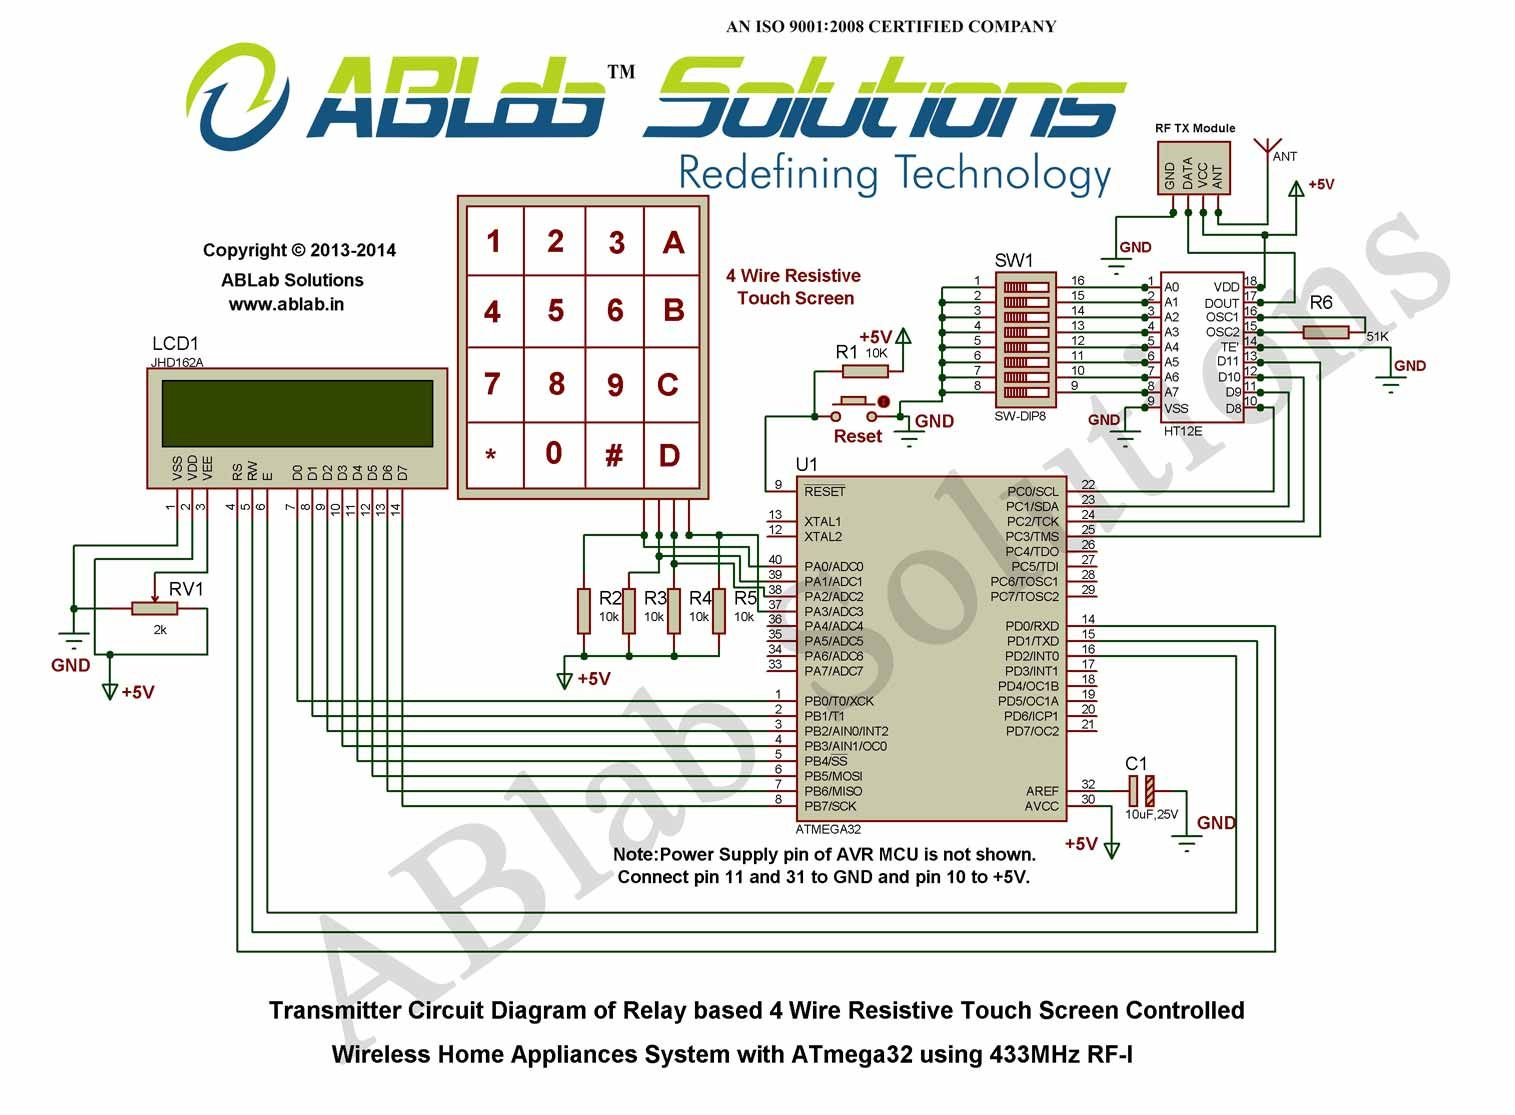 relay based 4 wire resistive touch screen controlled wireless home appliances system with avr atmega32 microcontroller using 433mhz rf i transmitter circuit  [ 1515 x 1115 Pixel ]